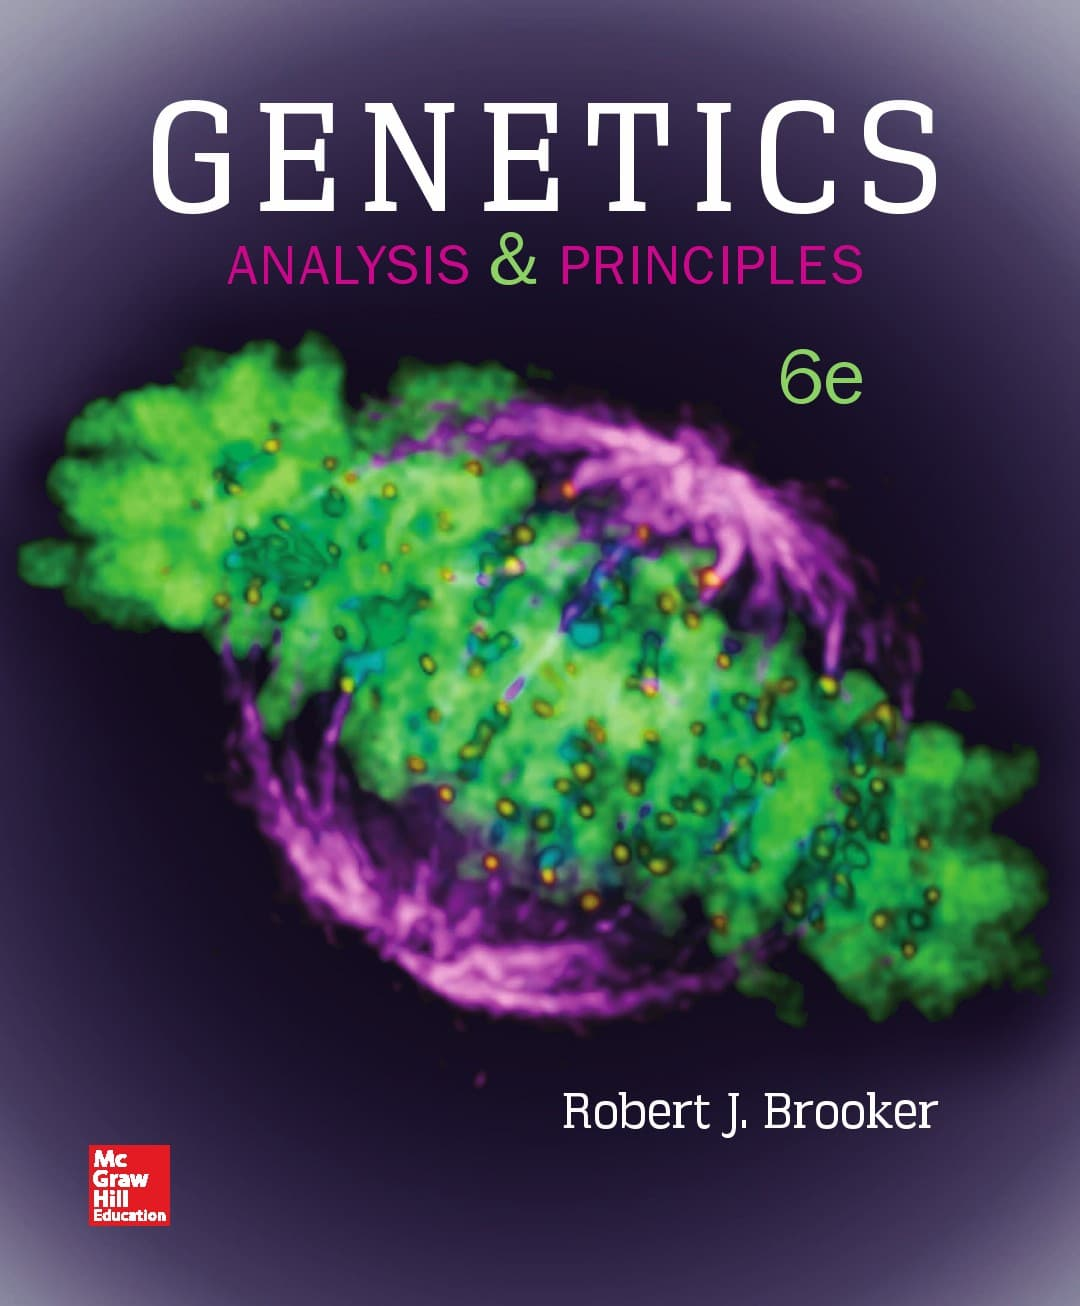 Image result for genetics analysis and principles